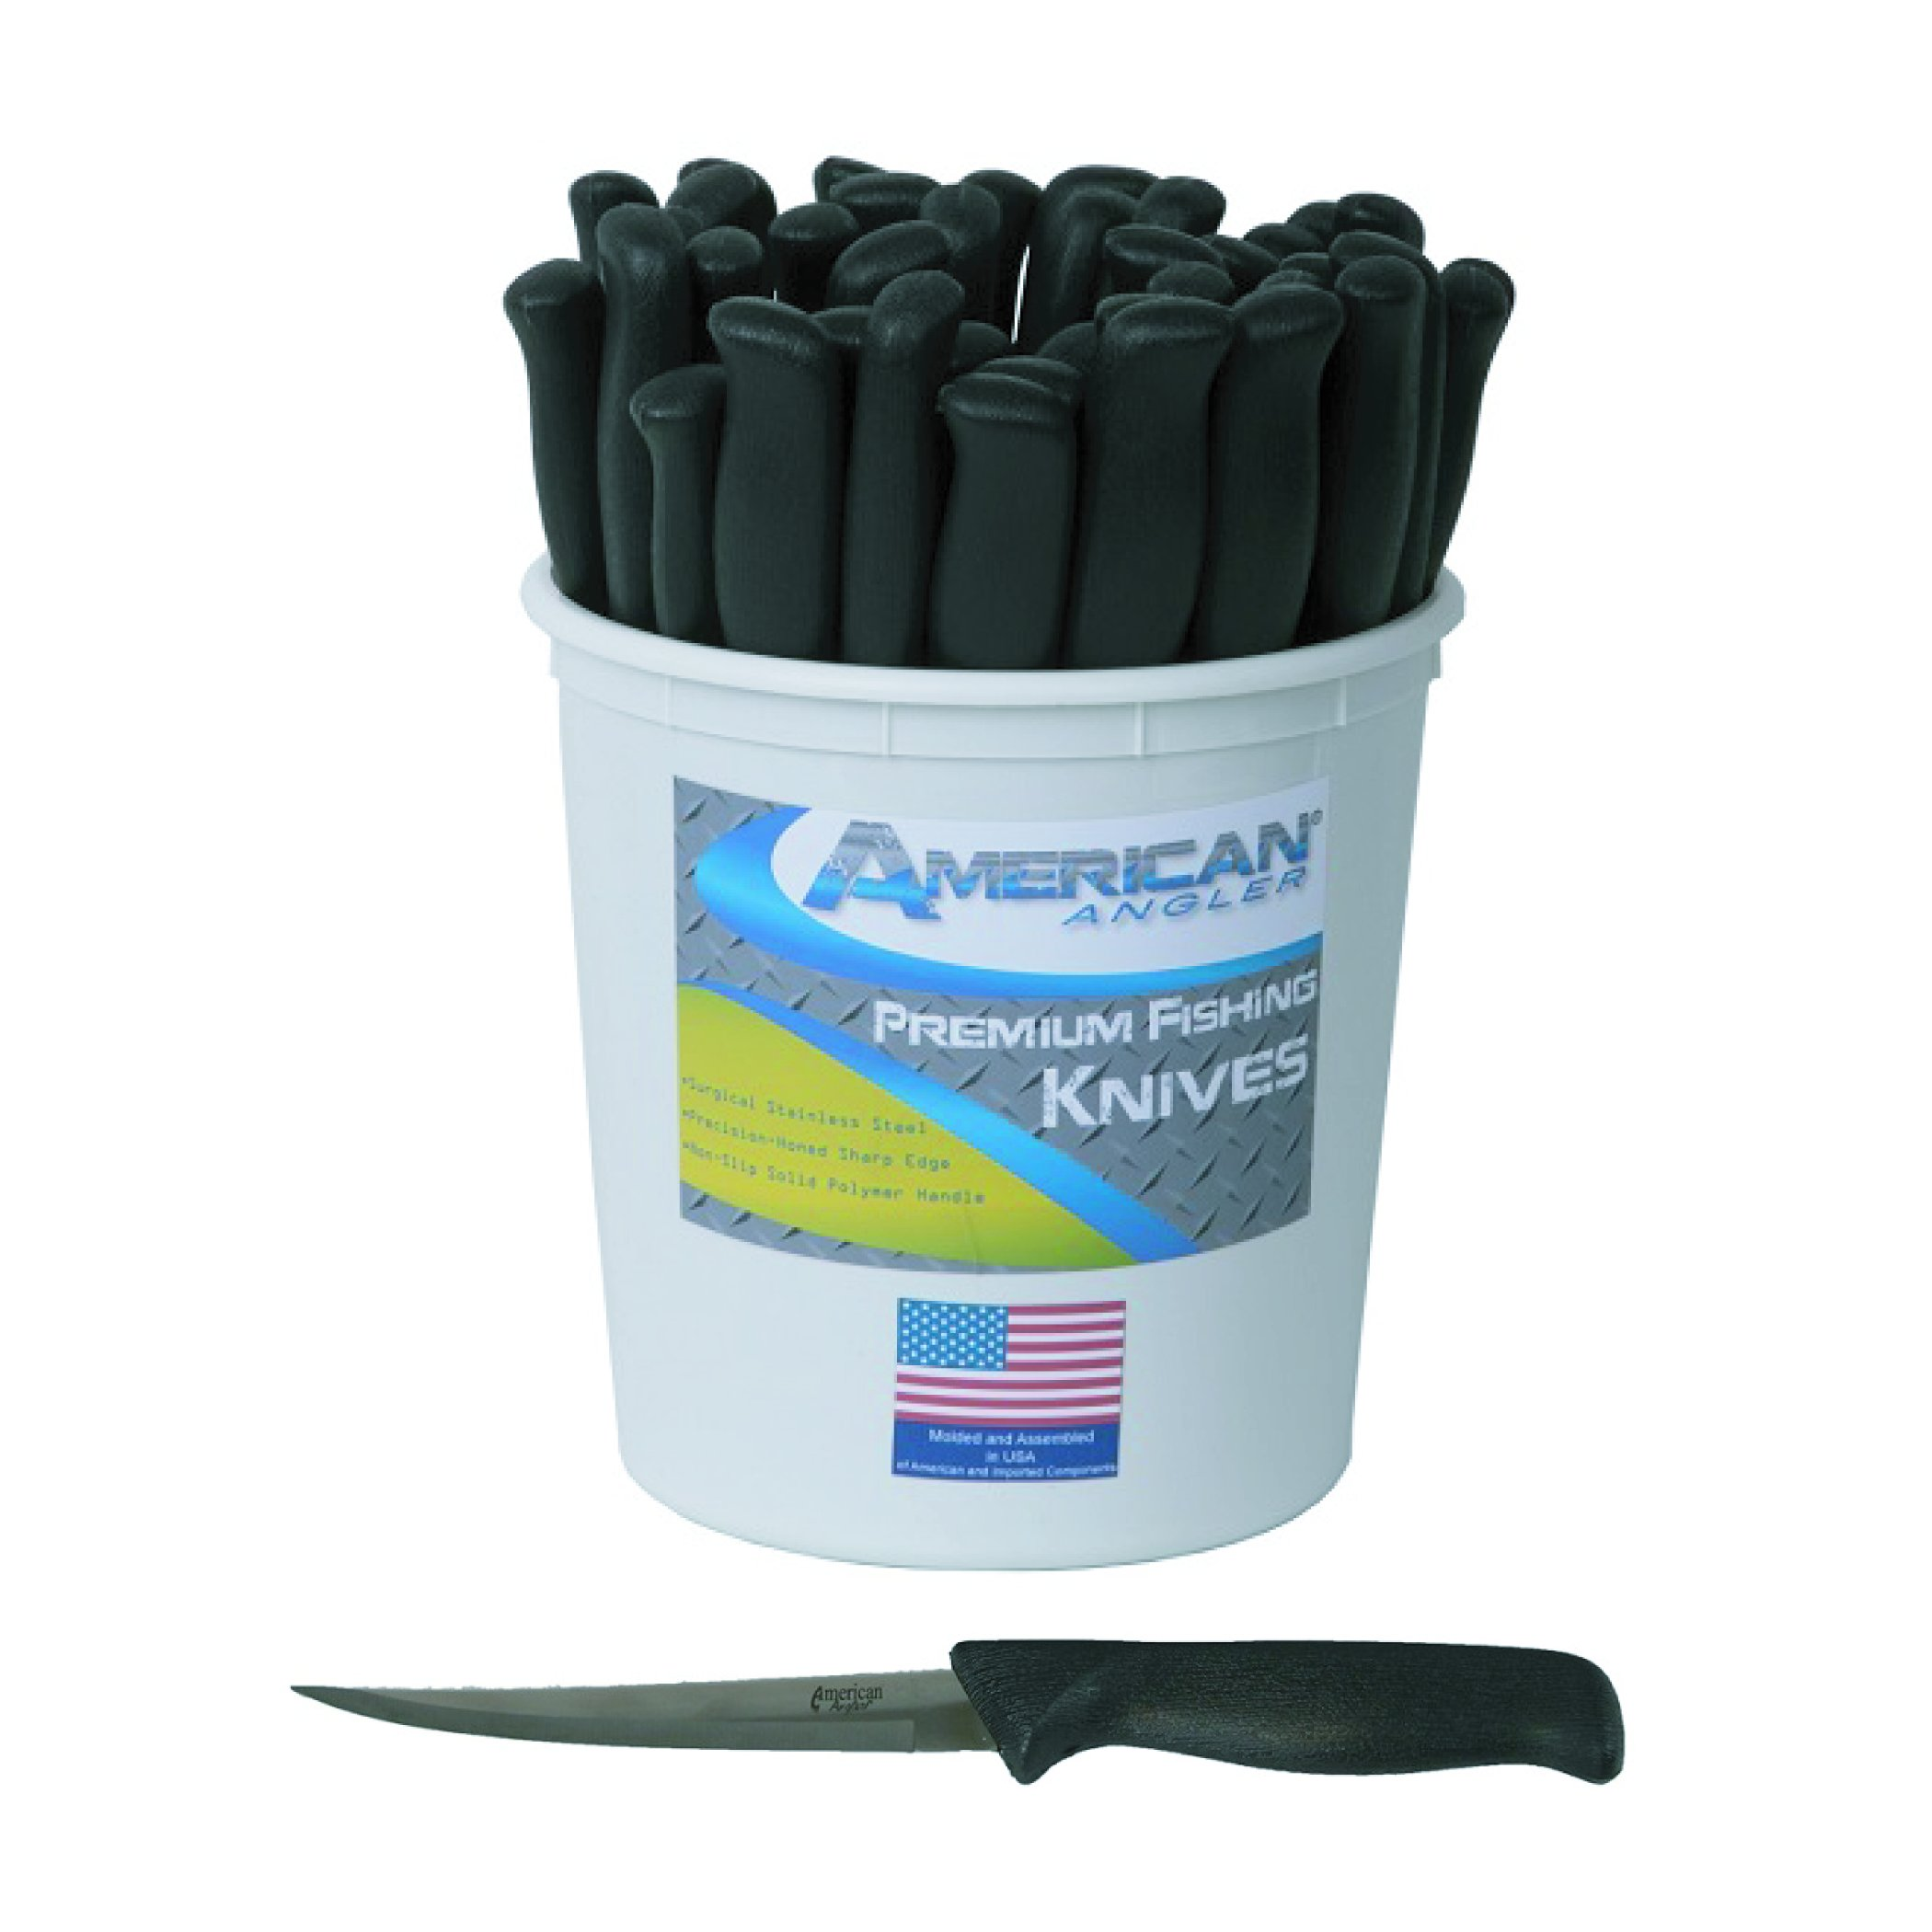 American Angler Fillet Pail Knife (45 Piece), Black, 6'' by American Angler